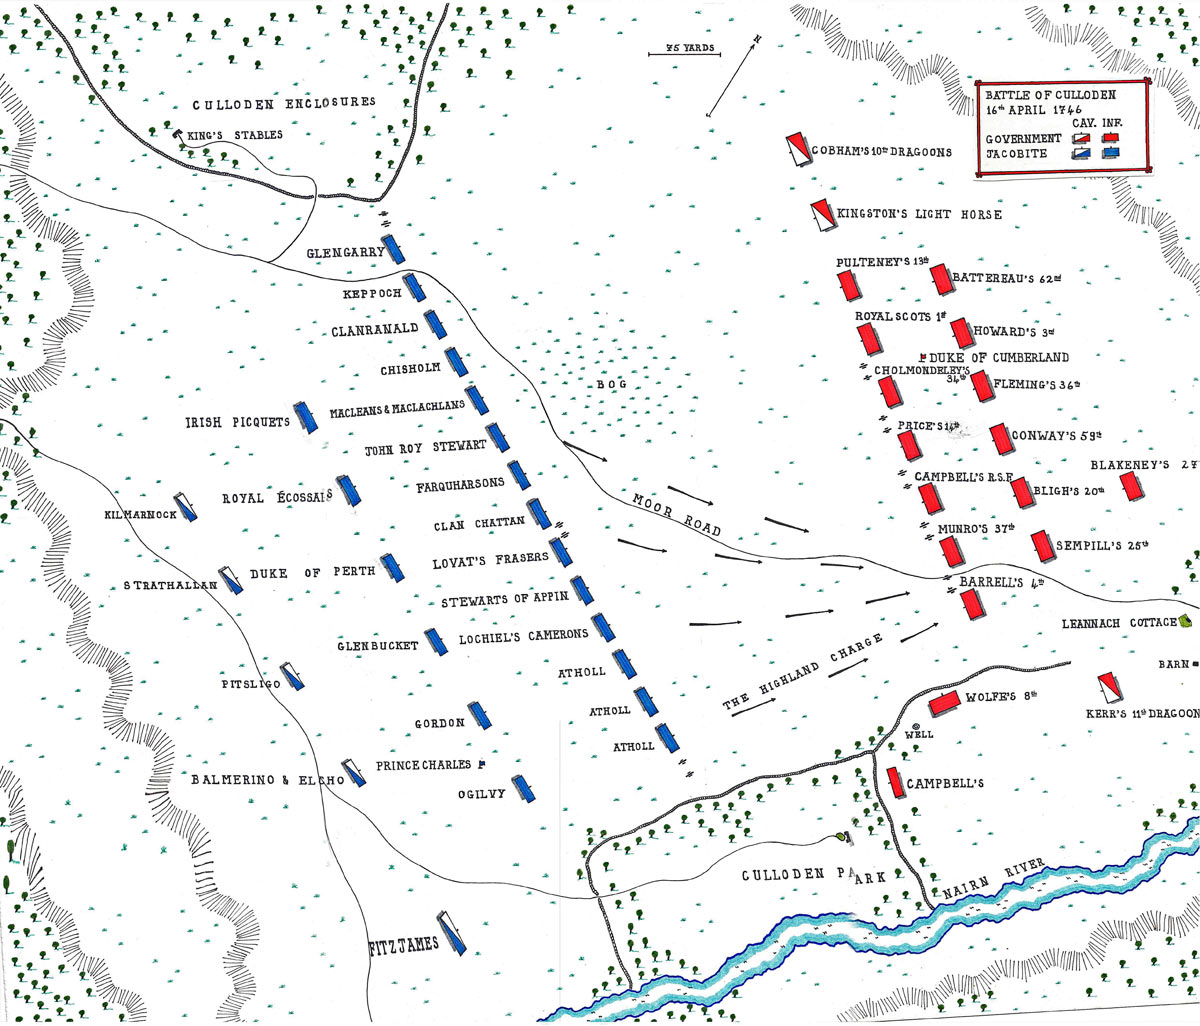 Map of the Battle of Culloden 16th April 1746 in the Jacobite Rebellion: map by John Fawkes